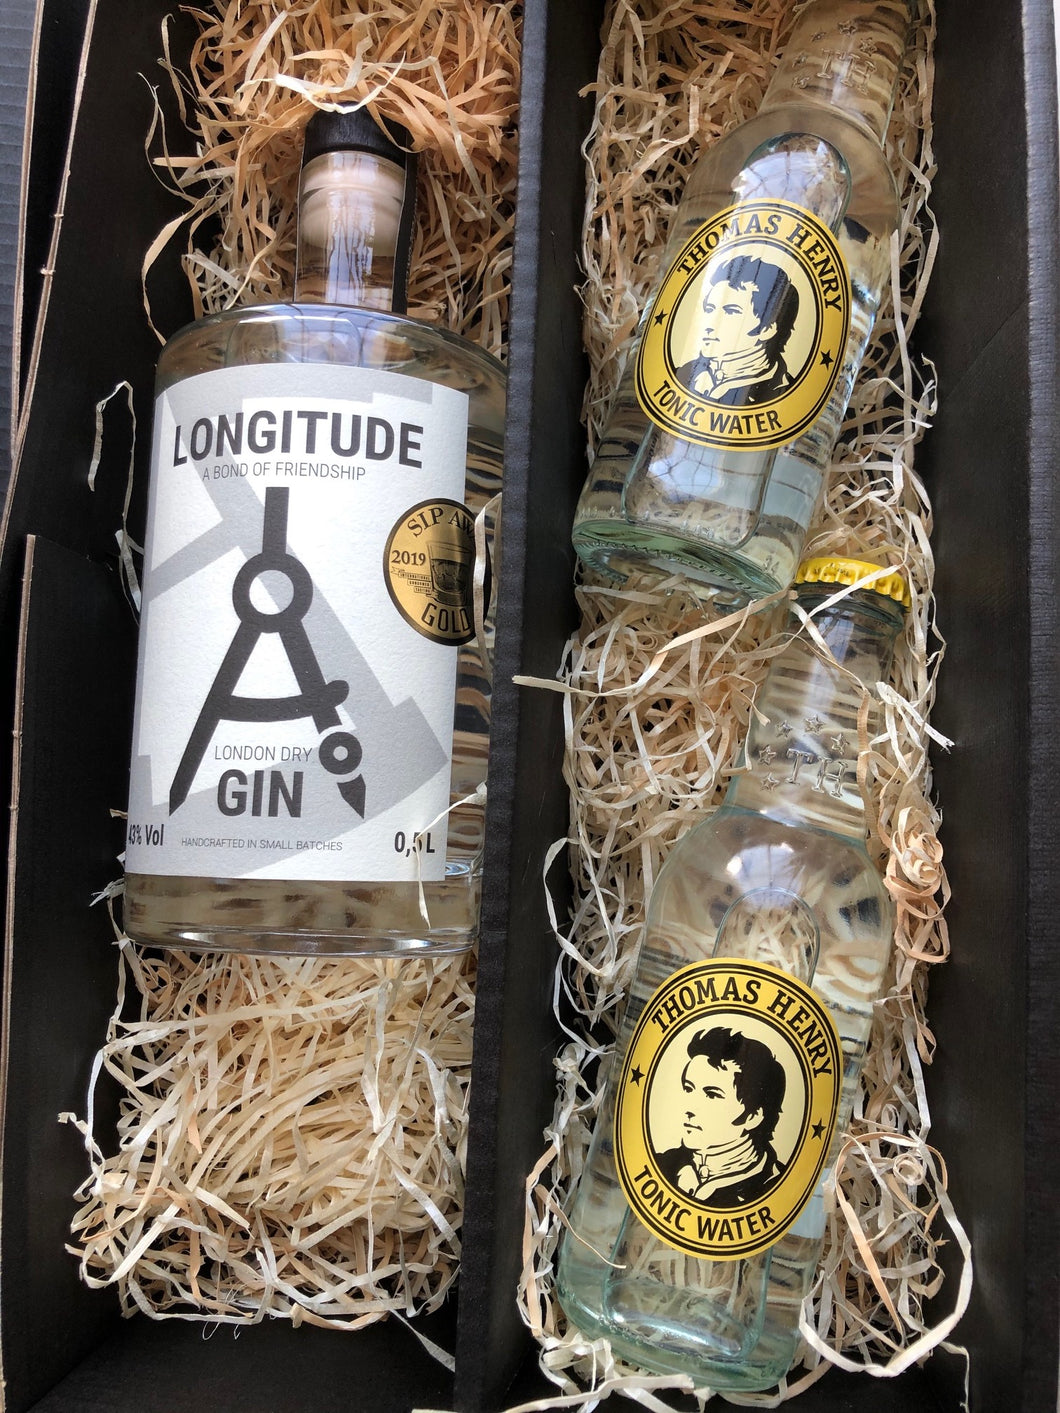 Longitude London Dry Gin Gift Box 1 x 0,5L plus 2 bottles of Thomas Henry Tonic